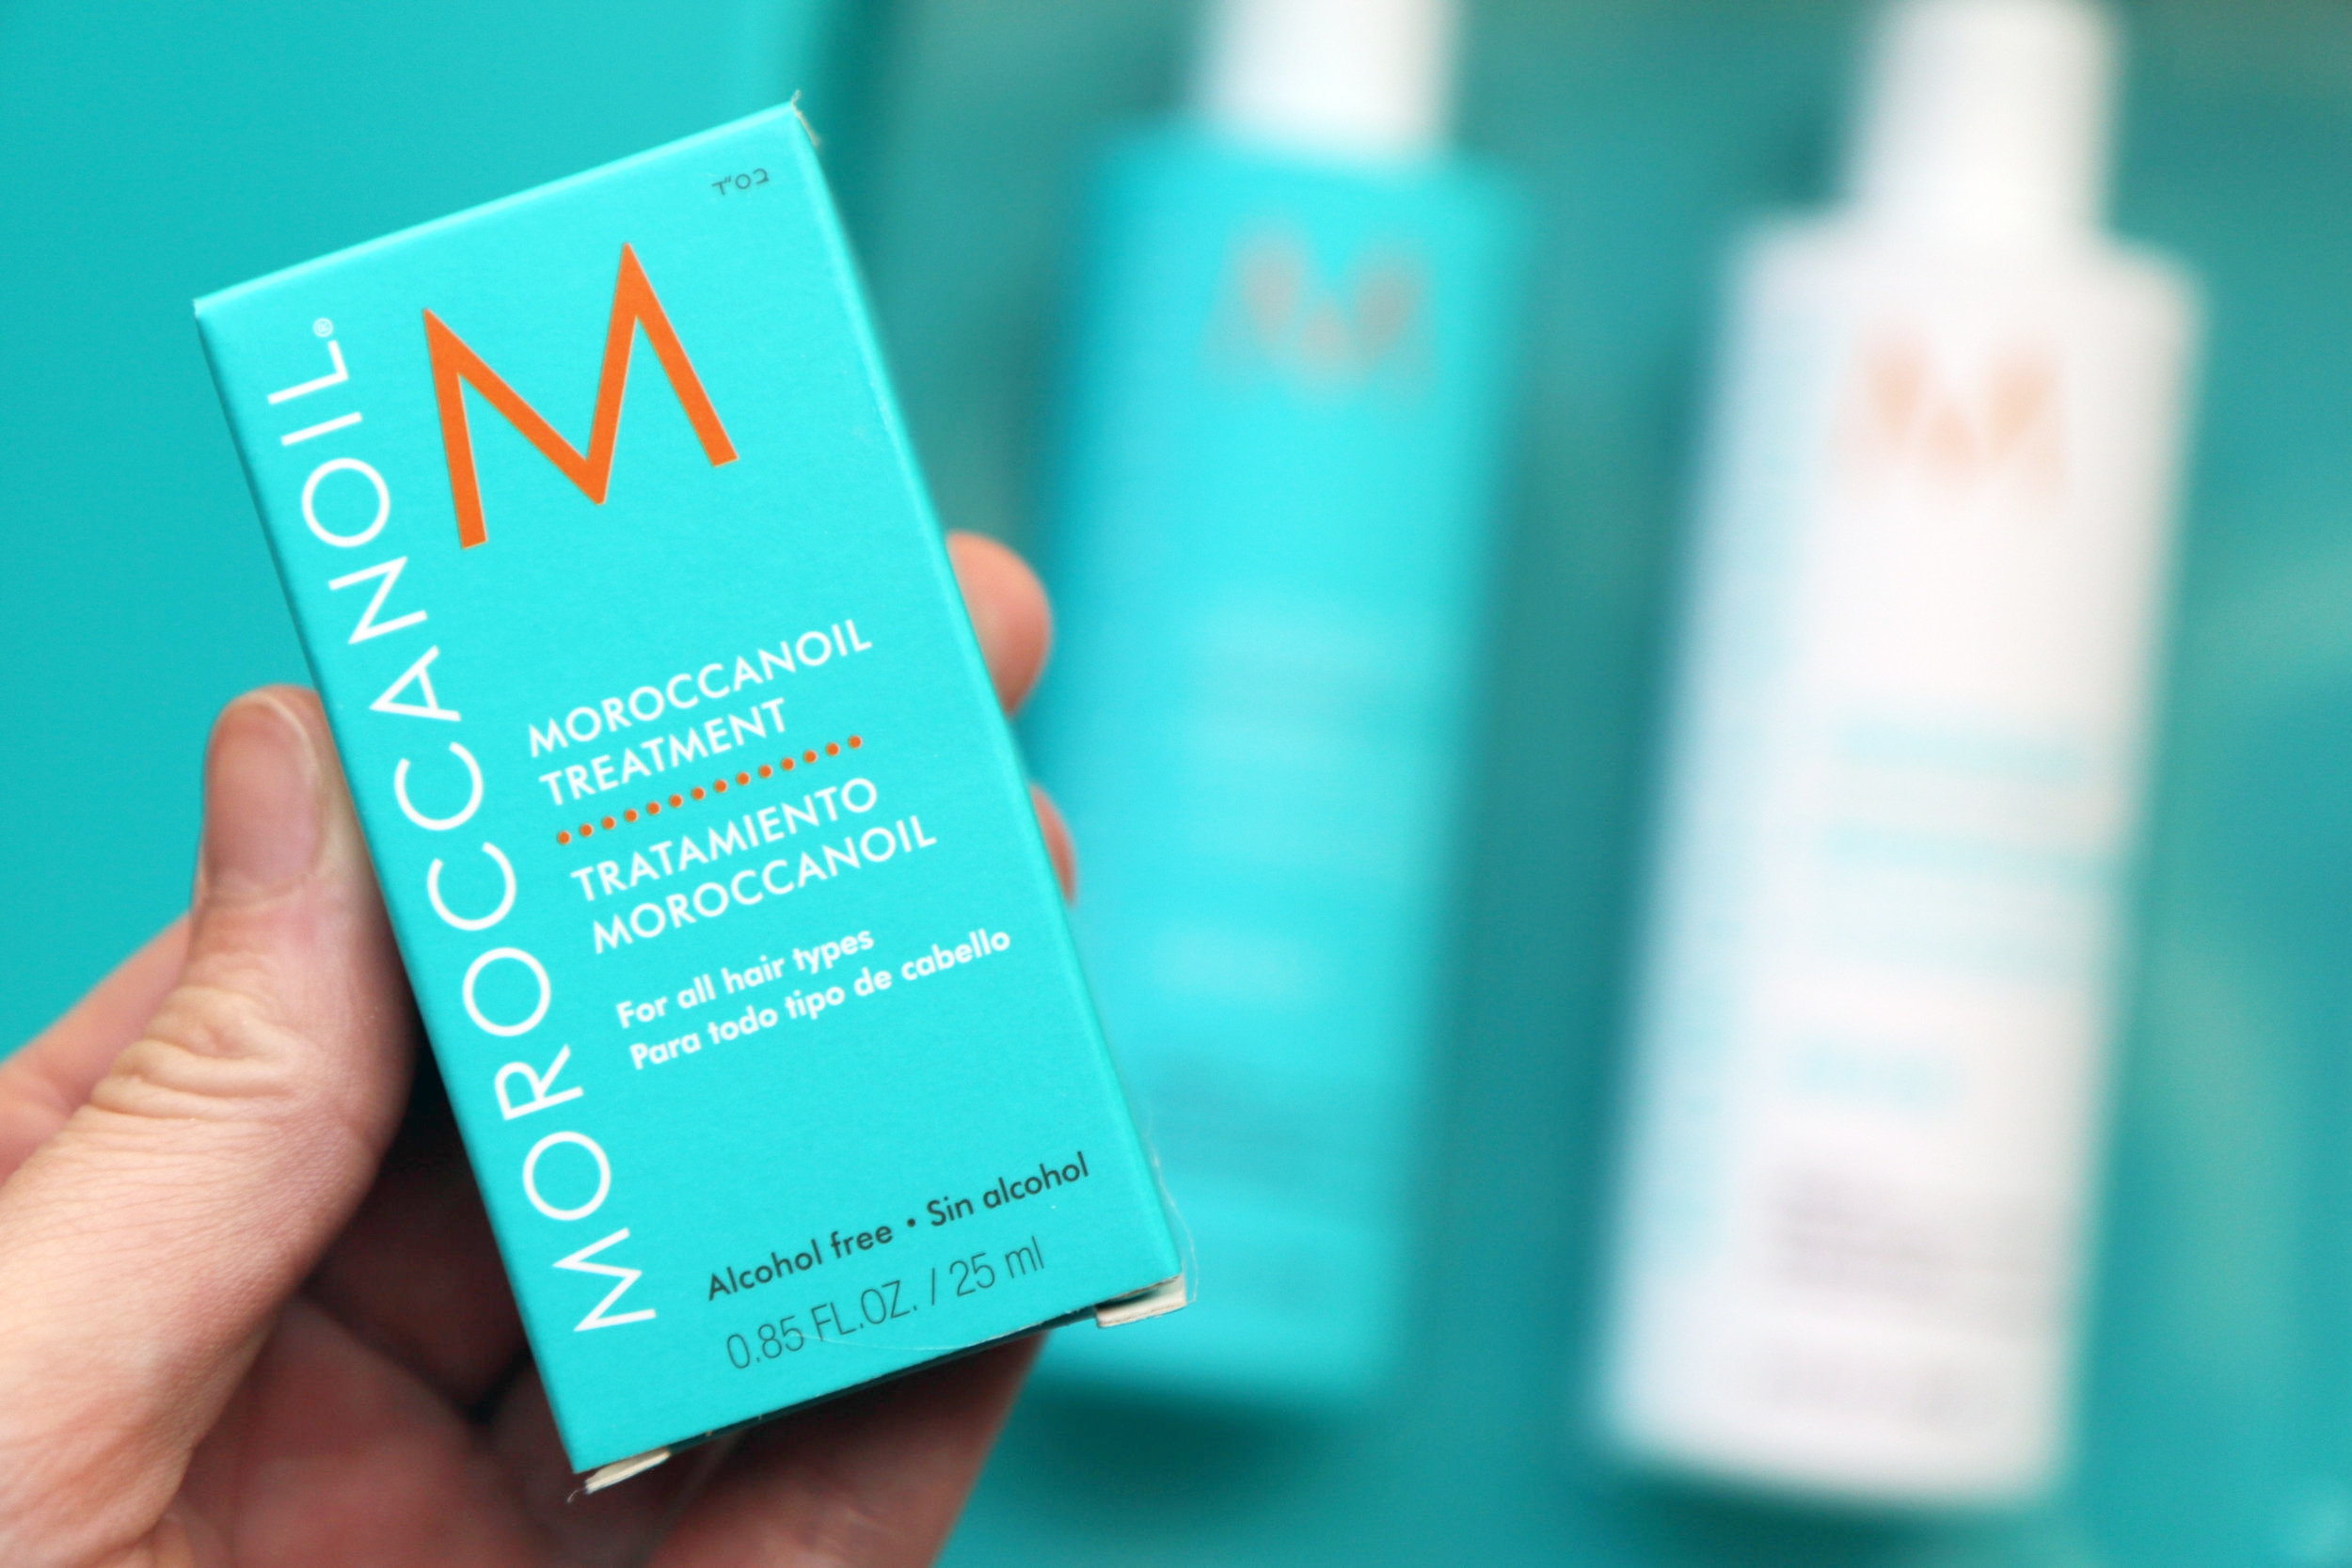 Moroccanoil Treatment for Silky & Smooth Hair